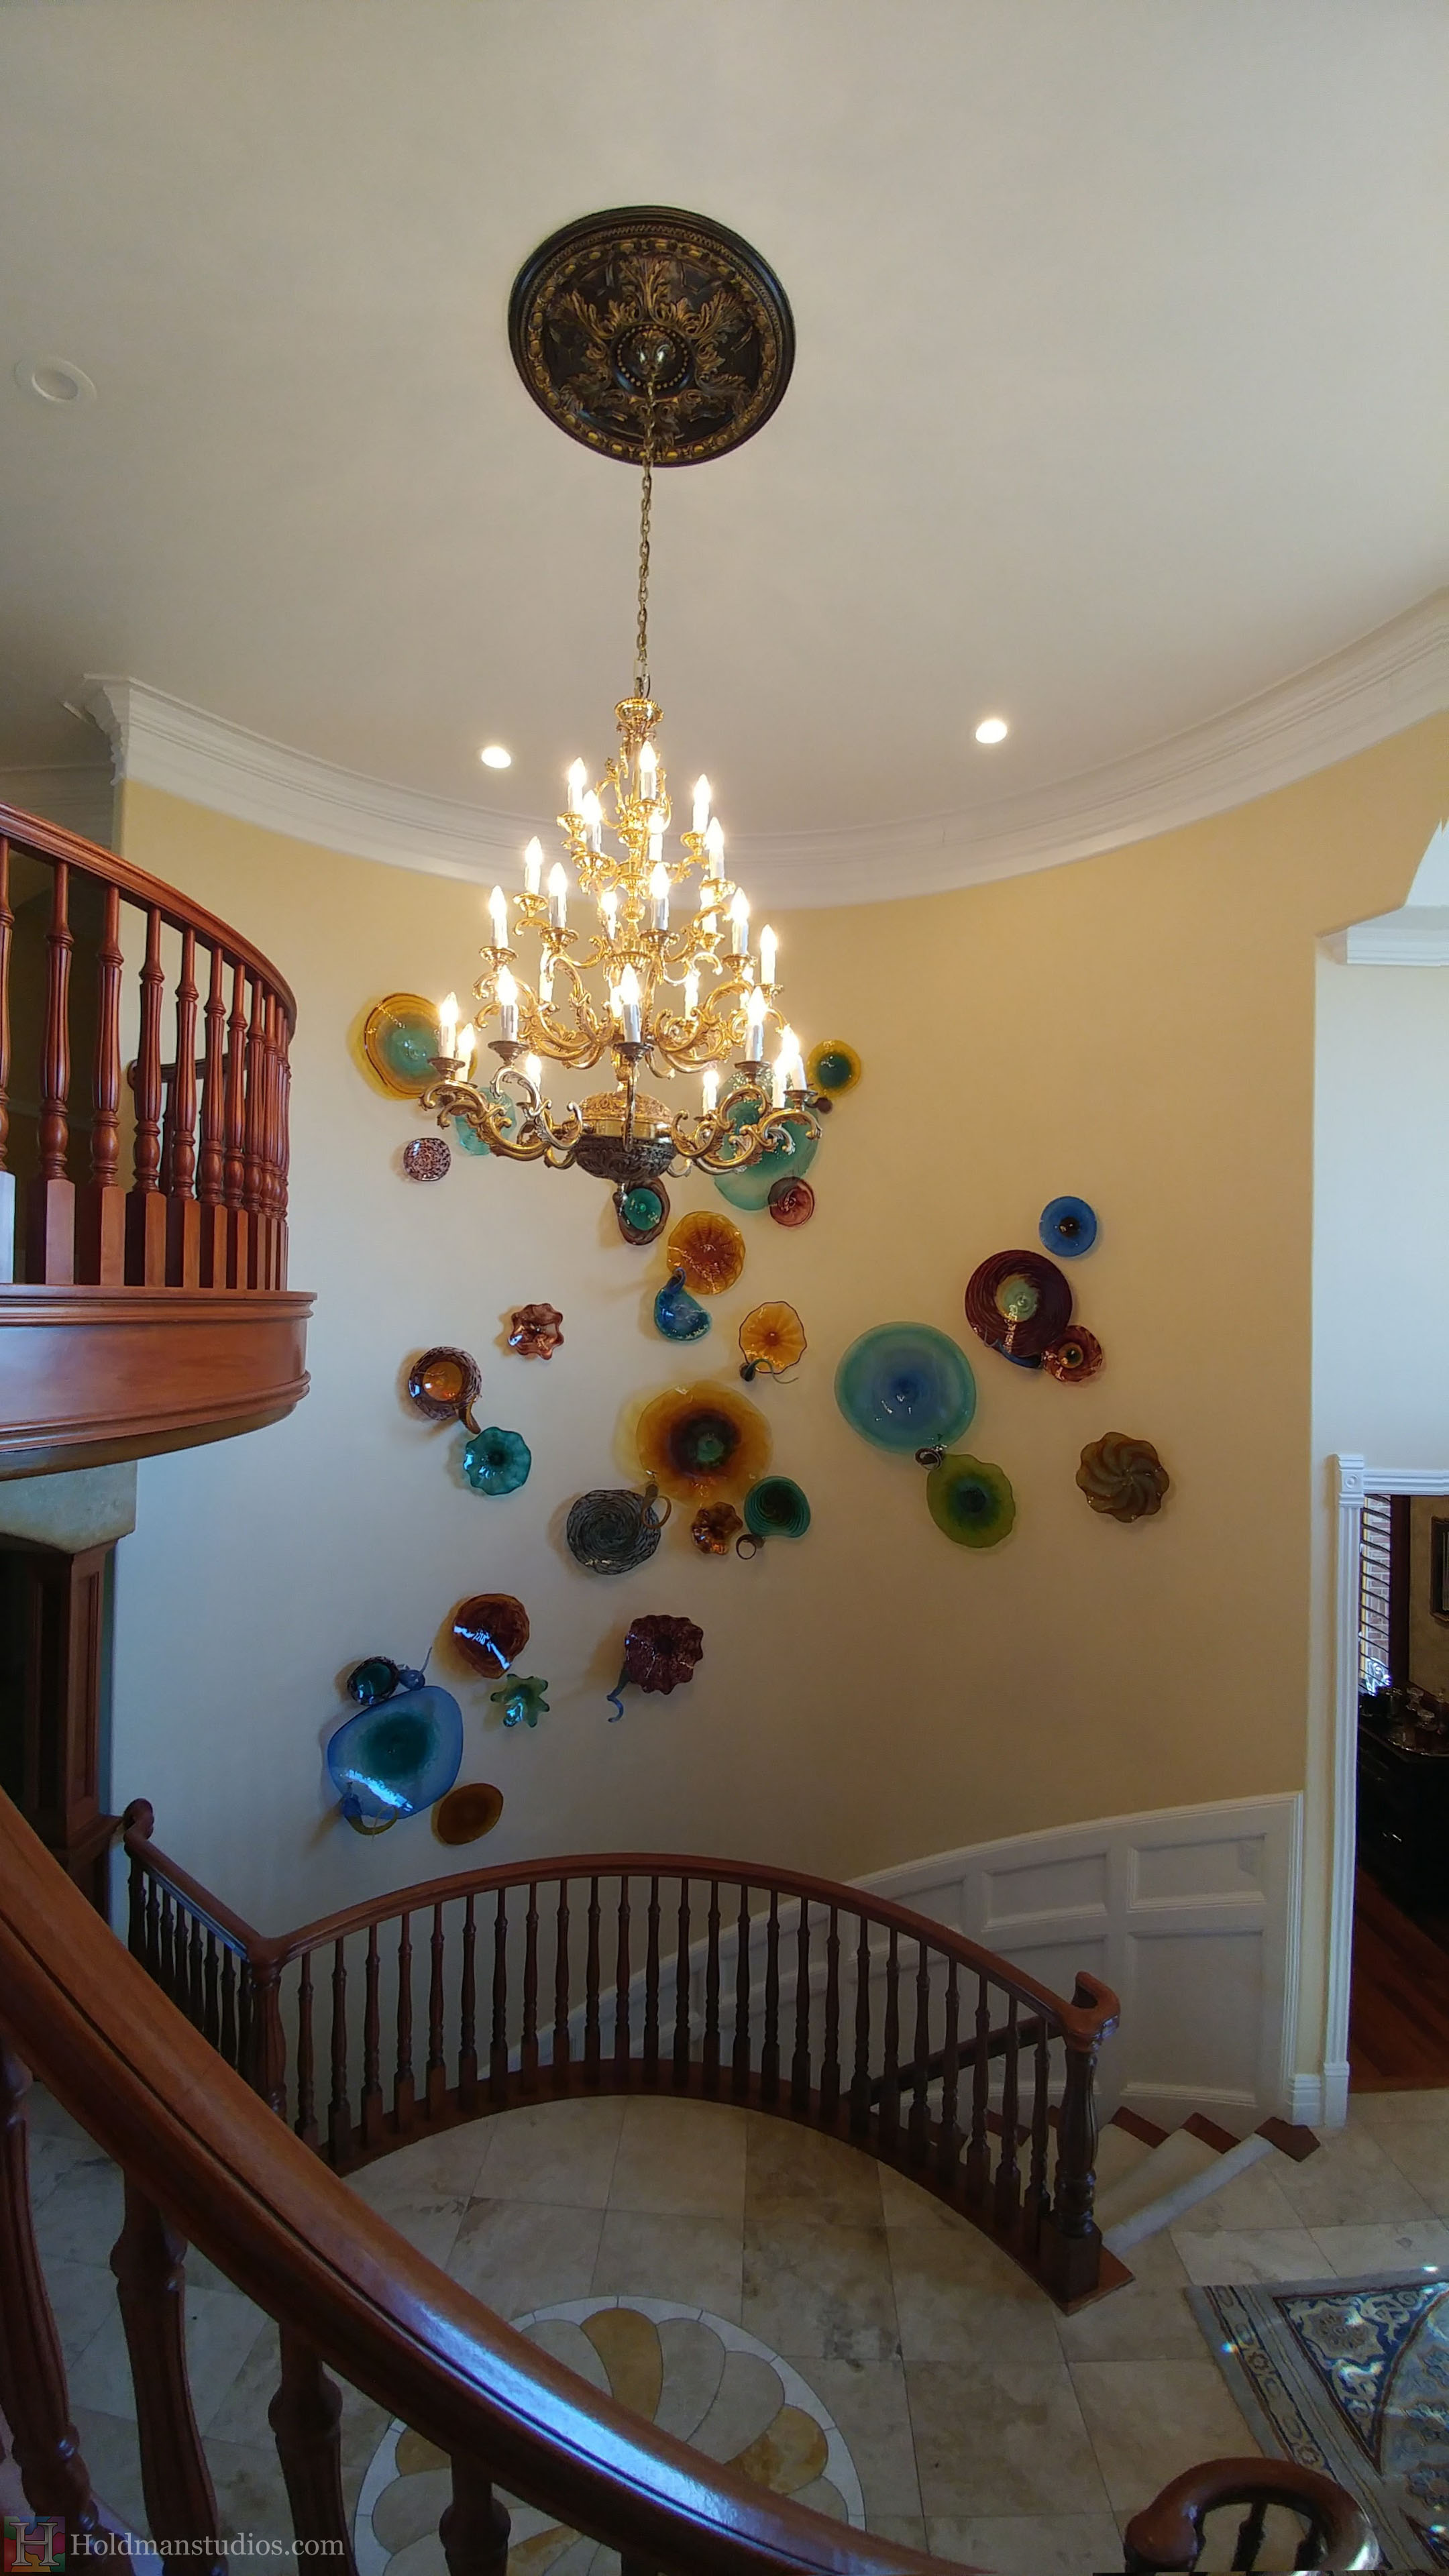 holdman-studios-hand-blown-glass-platter-bowls-tendrils-stair-wall-display.jpg